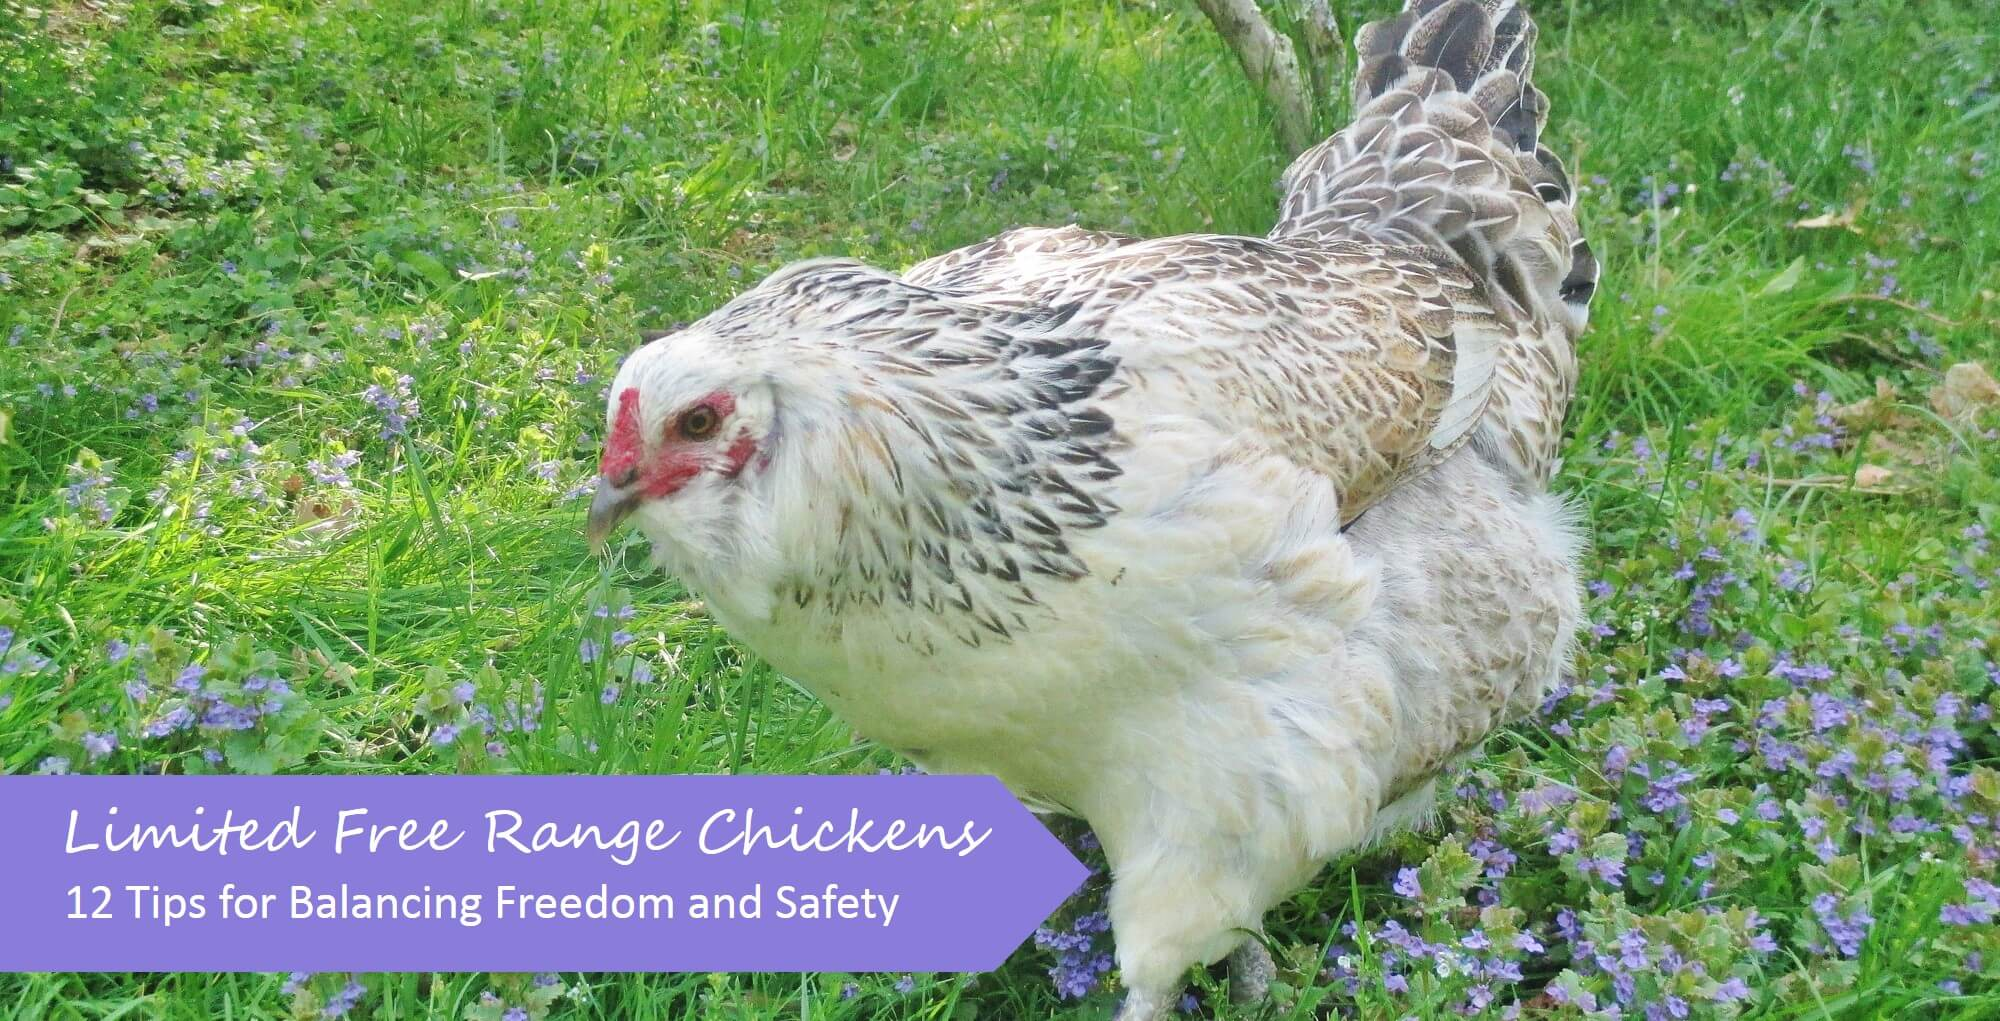 limited free range chickens 12 tips to balance freedom u0026 safety